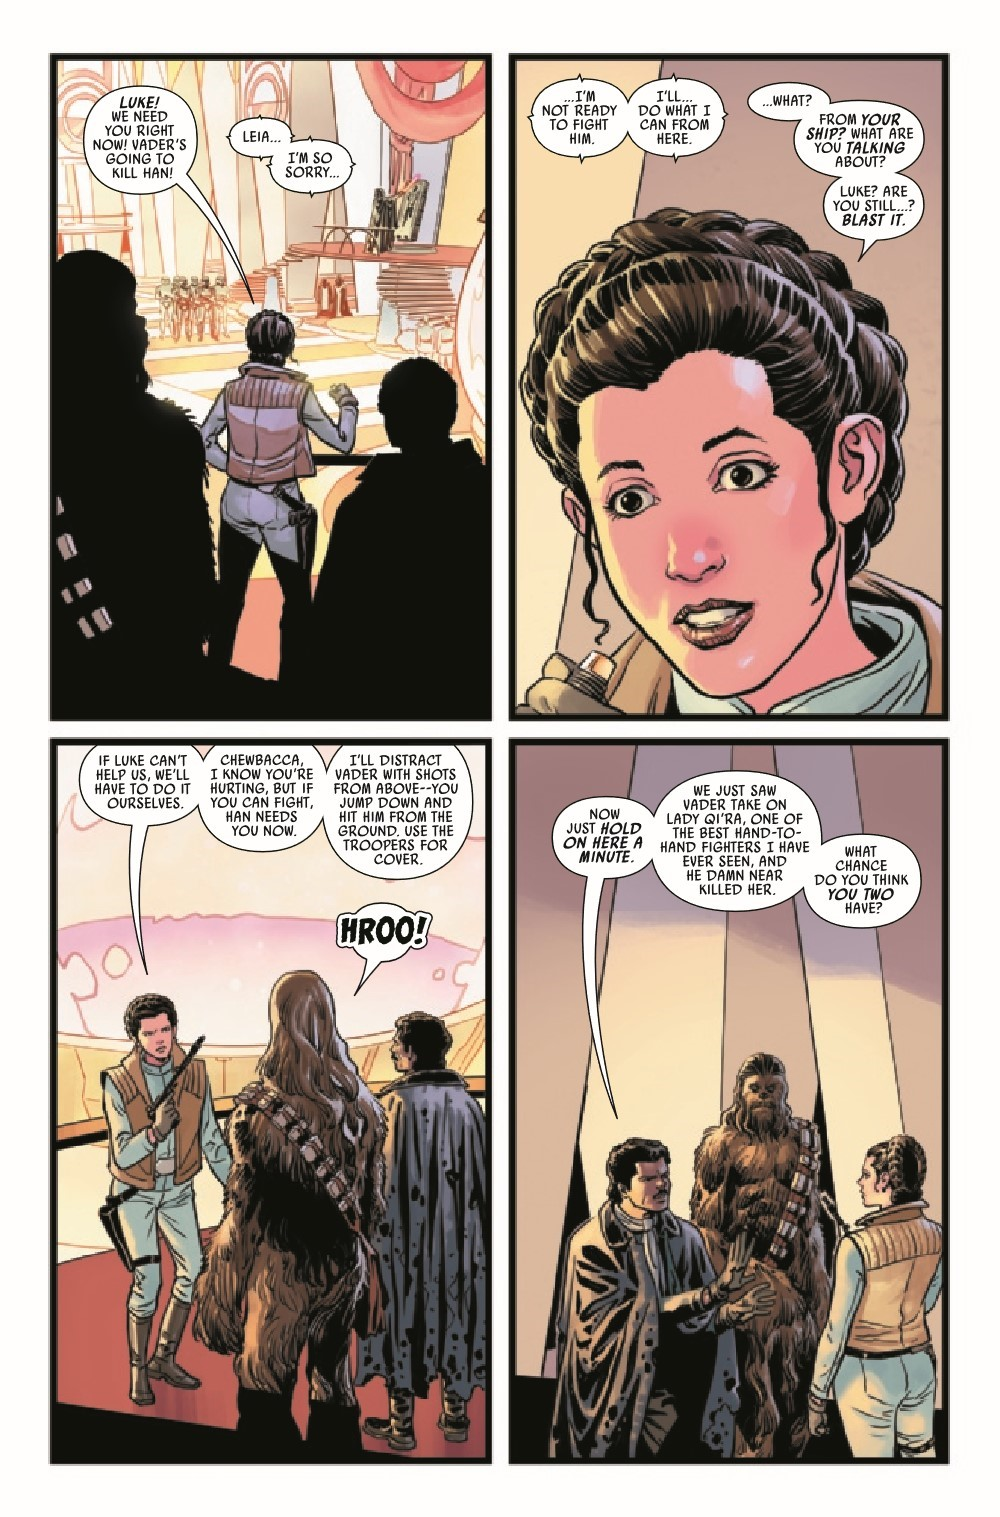 STWWAROTBH2021004_Preview-3 ComicList Previews: STAR WARS WAR OF THE BOUNTY HUNTERS #4 (OF 5)